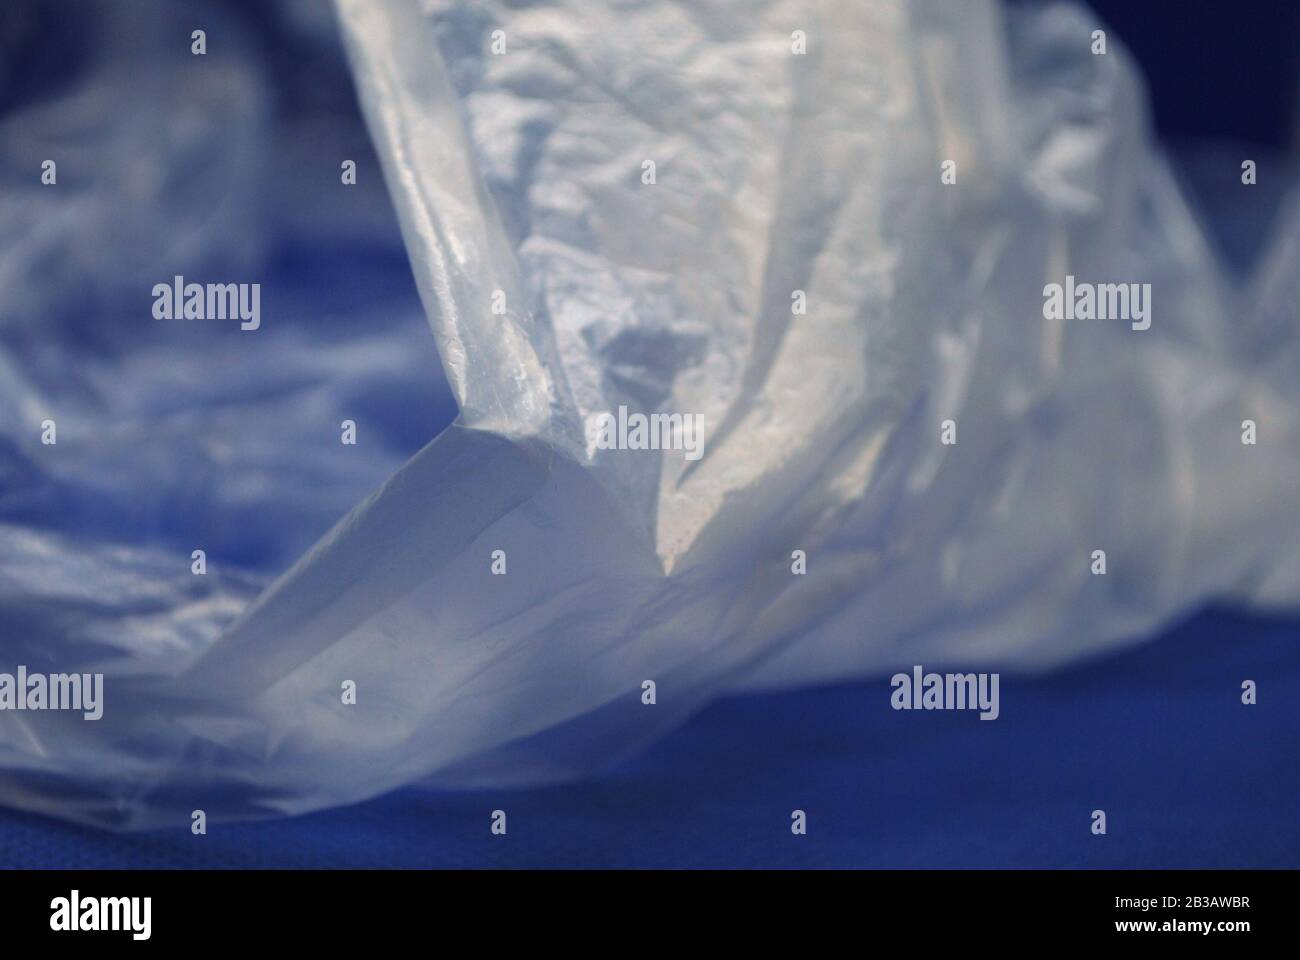 Close up view of transparent polyethylene plastic bag from on a blue background Stock Photo